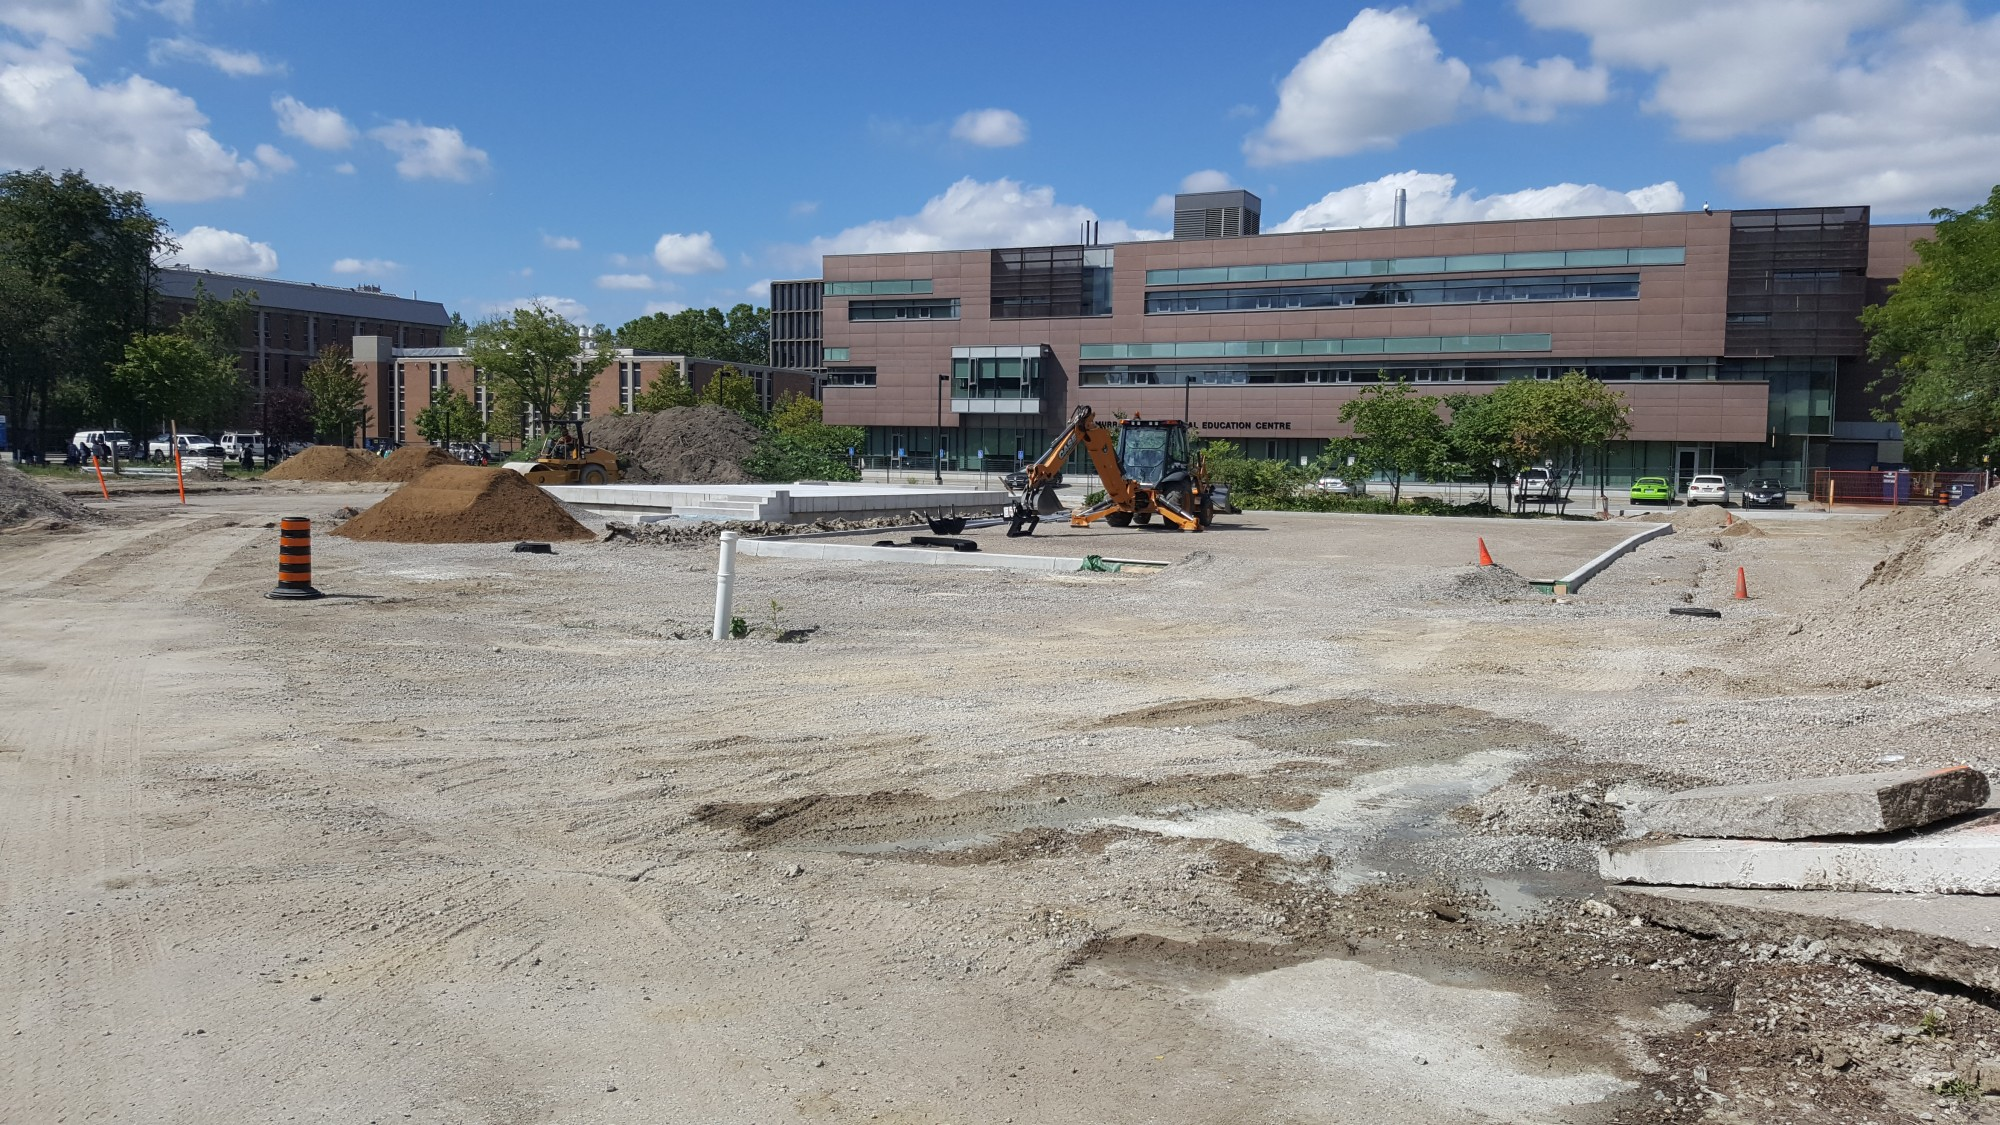 Campus Commons under construction